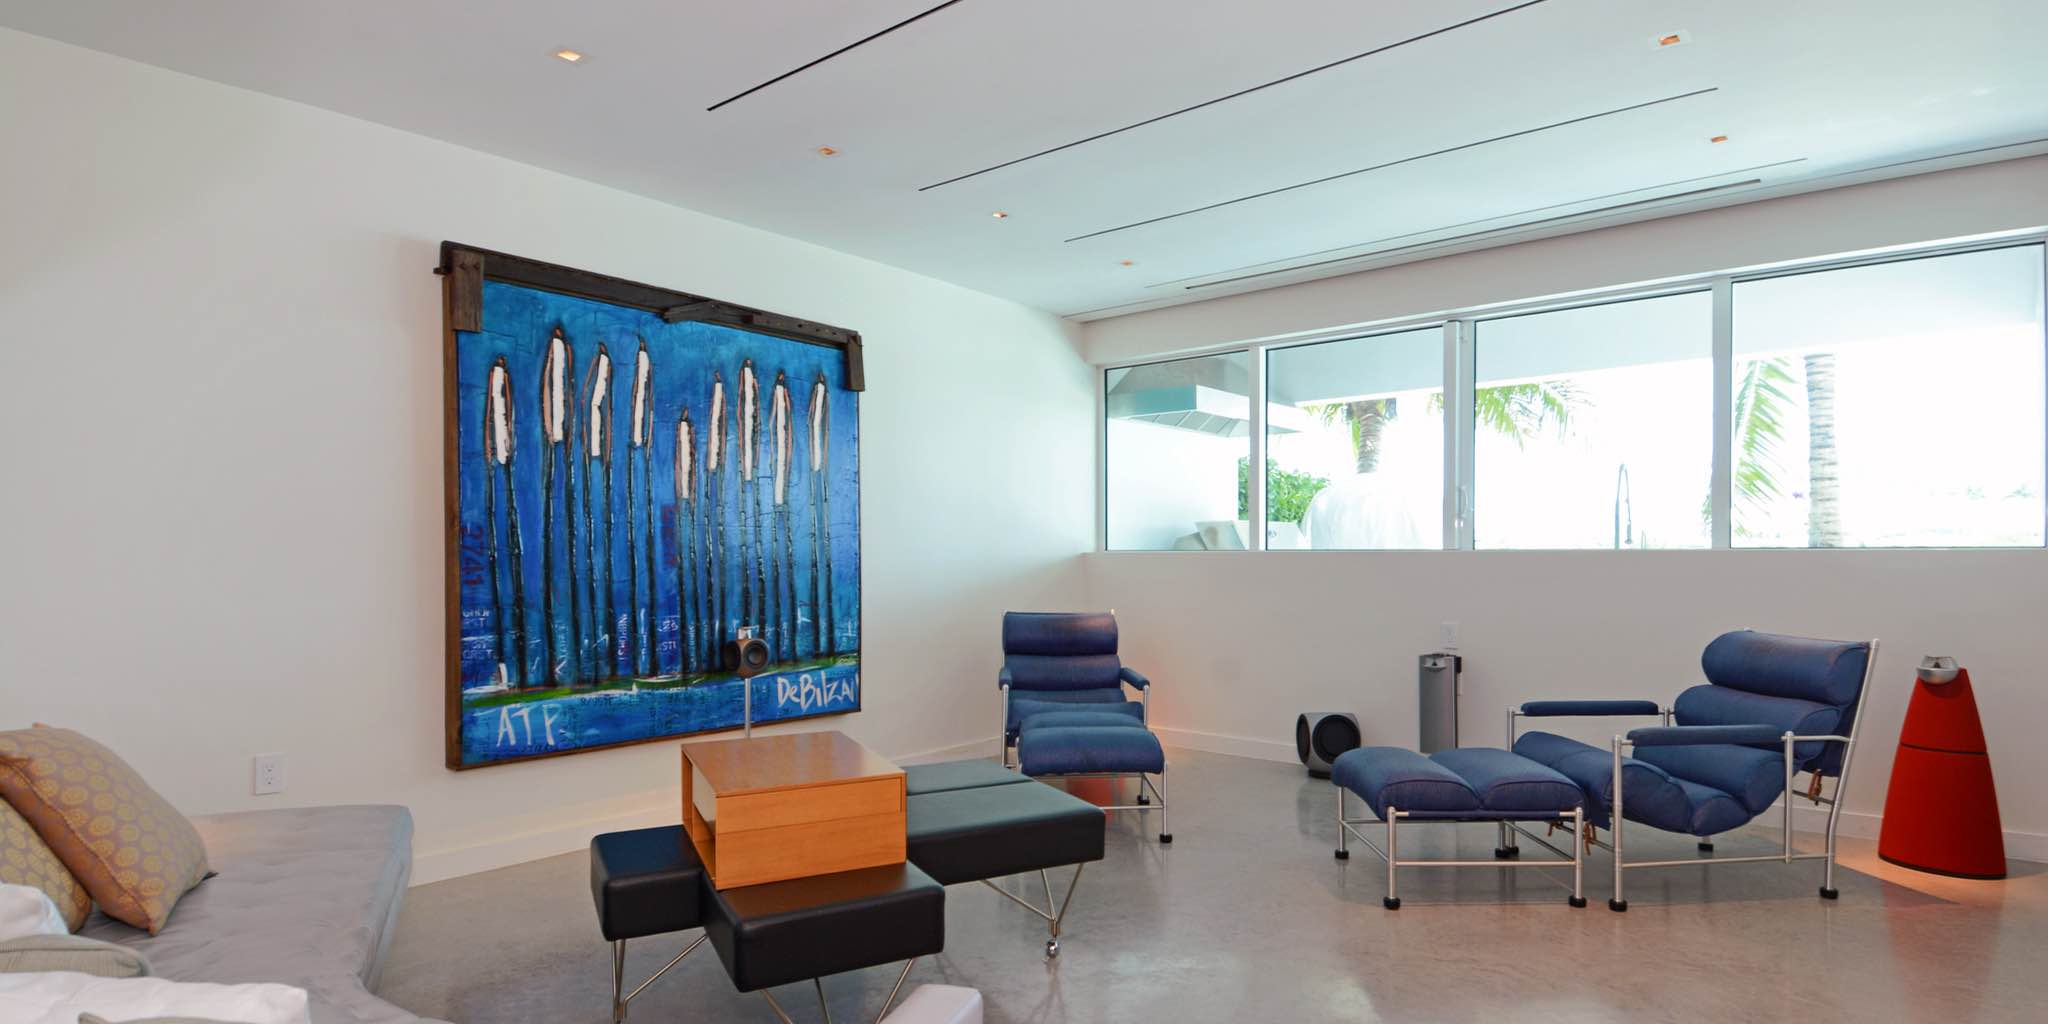 Bang & Olufsen Whole Home Audio Visual Installation, in Palm Island, FL. By dmg Martinez Group.